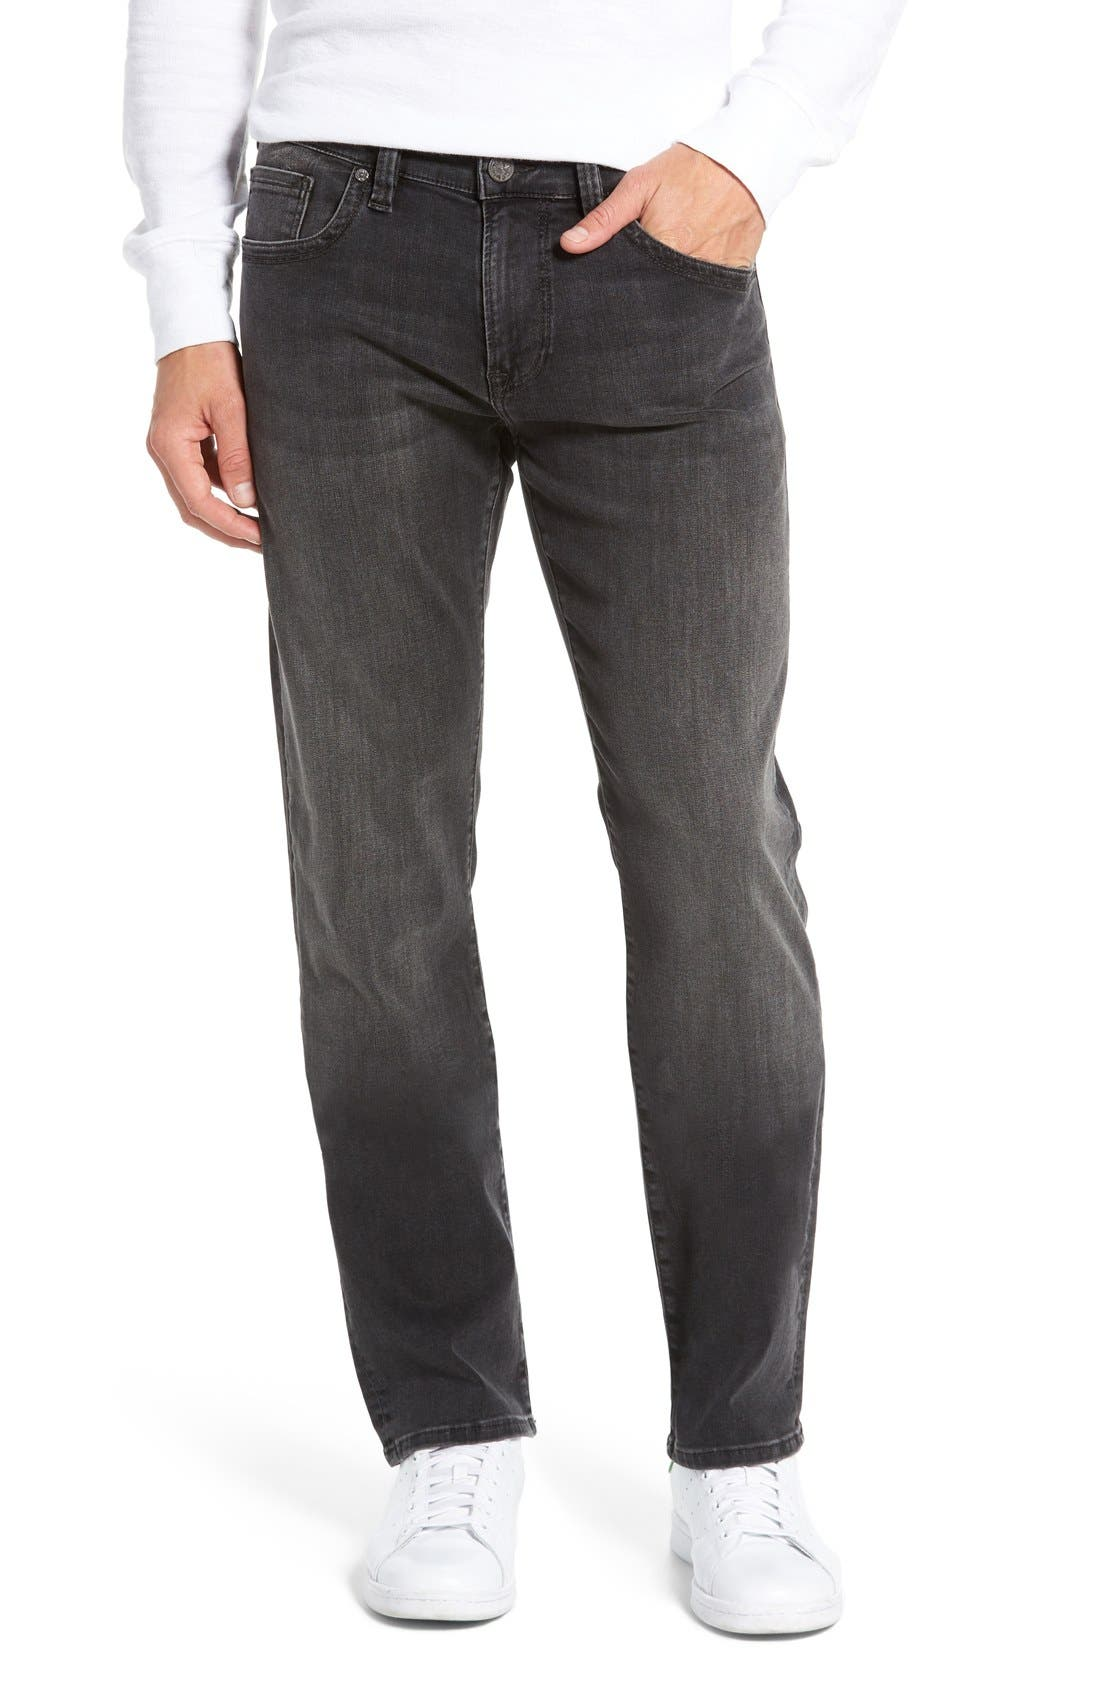 34 Heritage 'Courage' Straight Leg Jeans (Coal Soft)